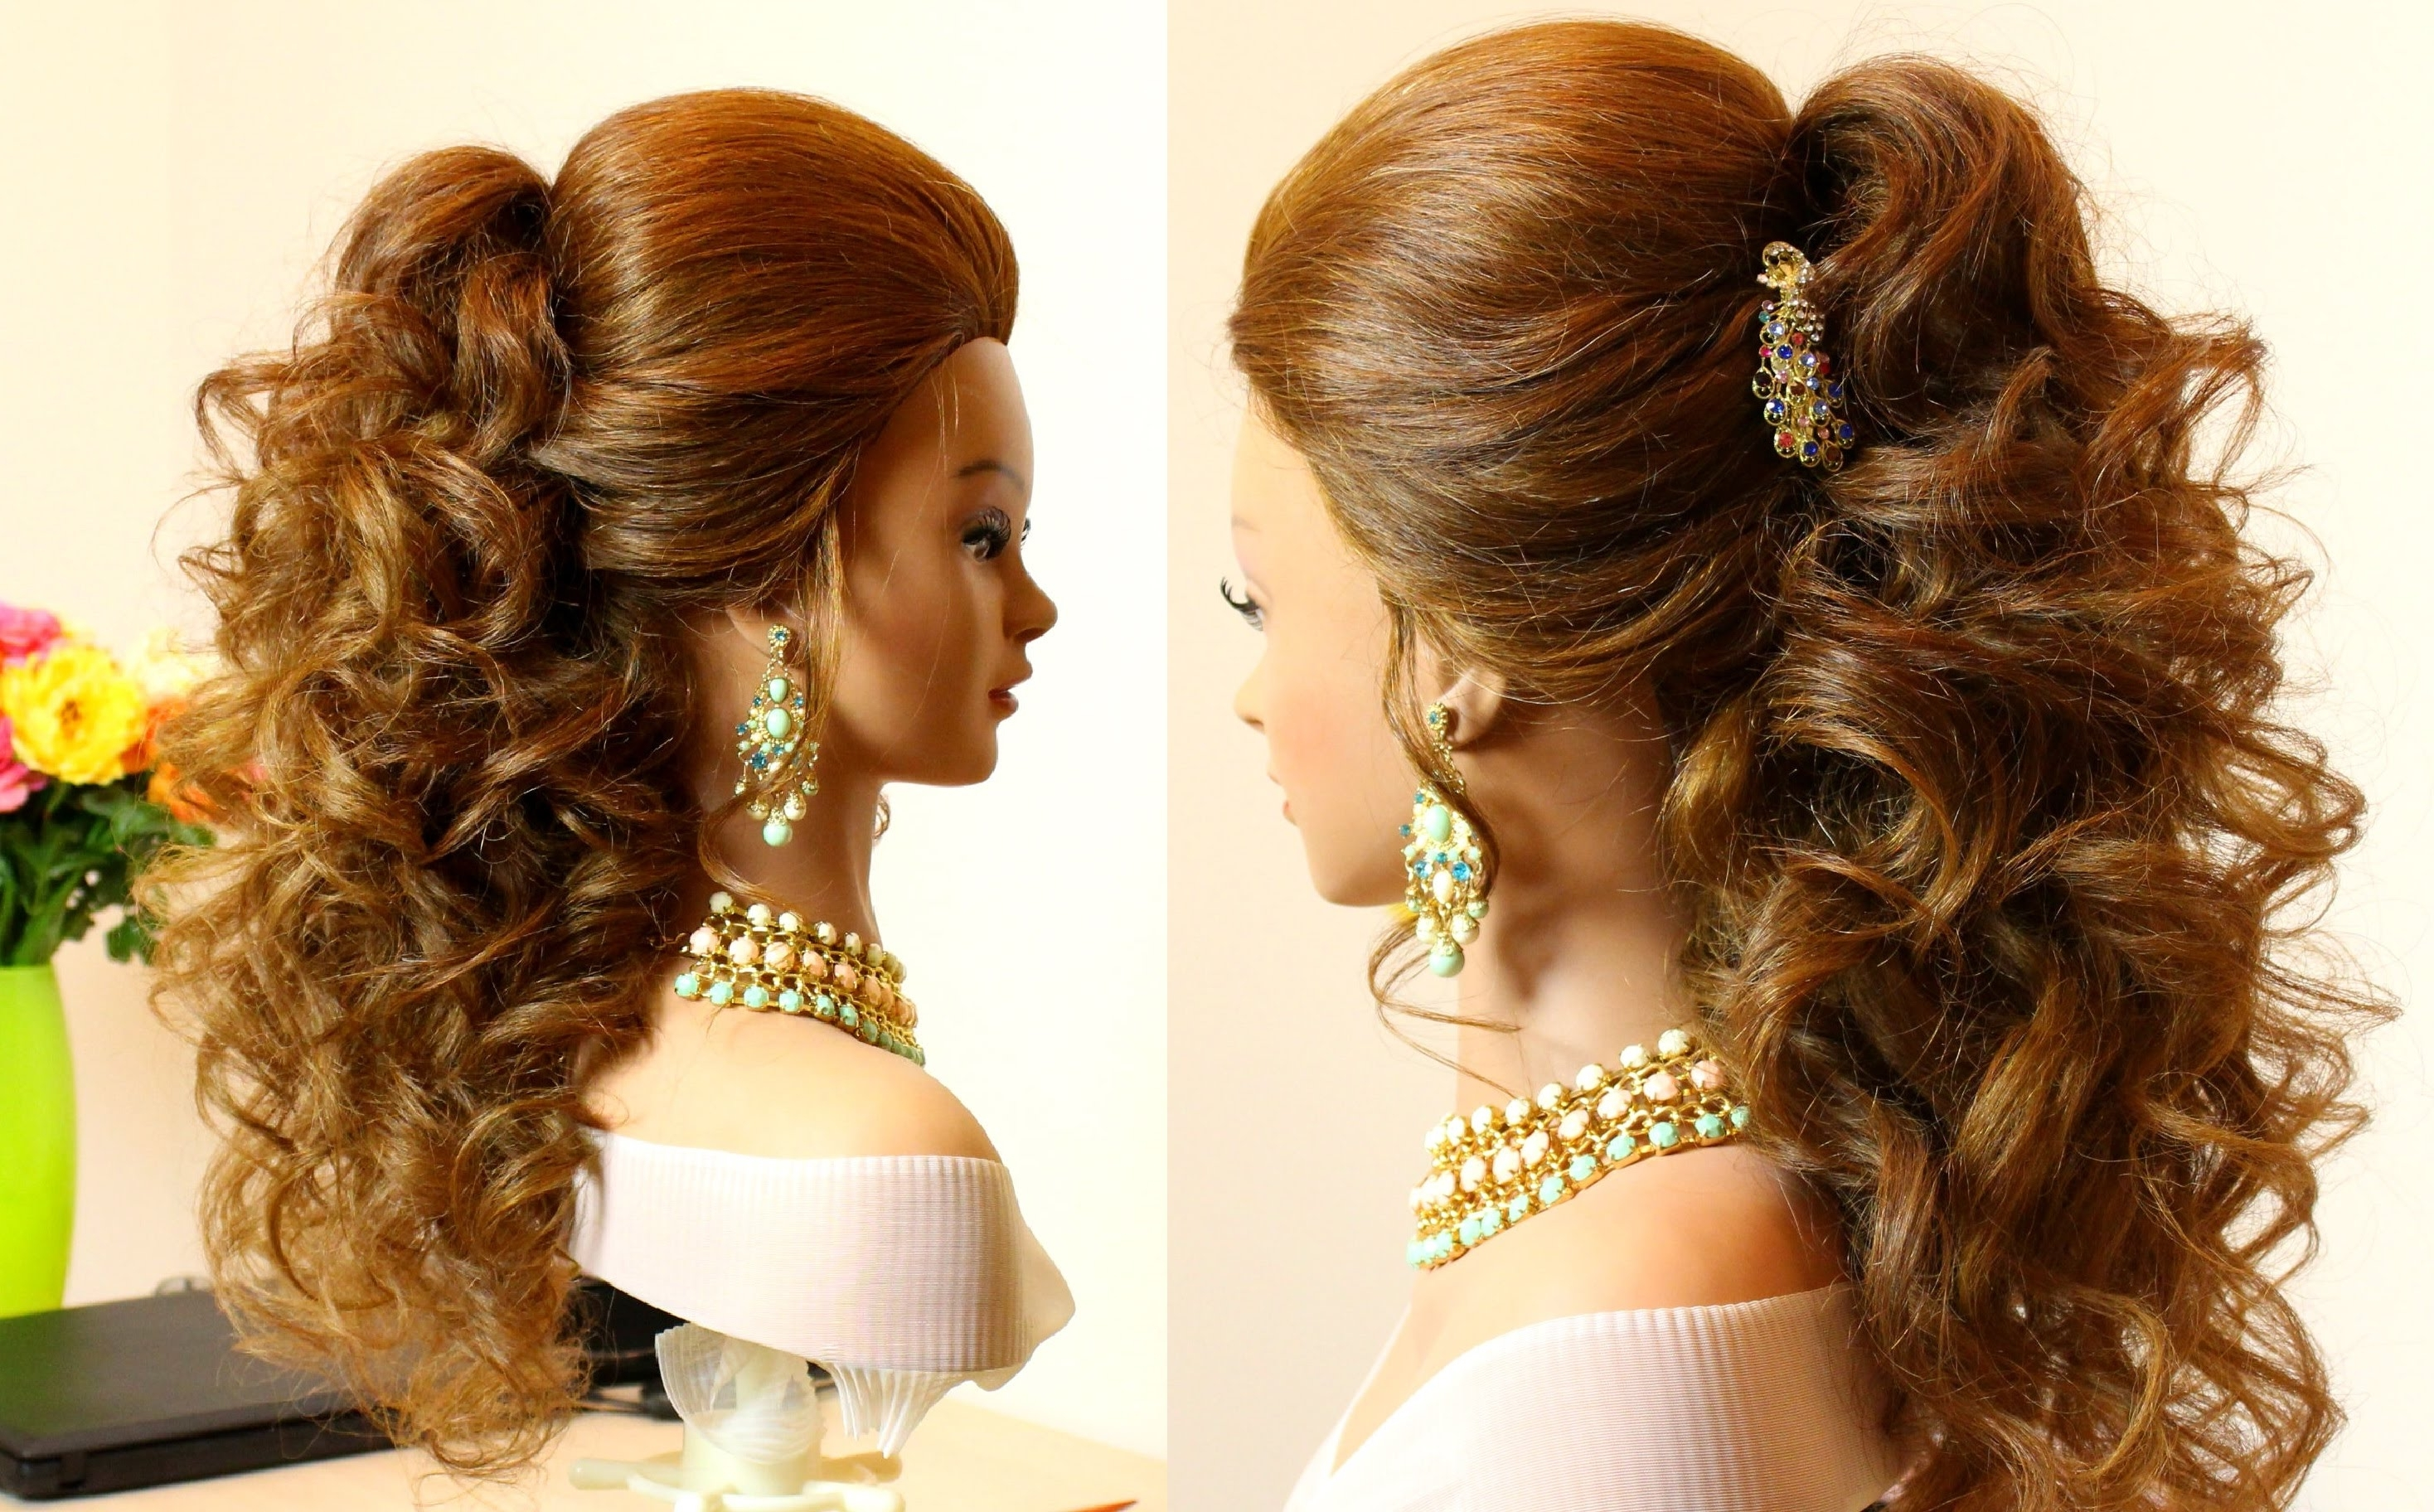 Curly Bridal Hairstyle For Long Hair Tutorial – Youtube Pertaining To Current Big Curls Wedding Hairstyles (View 8 of 15)